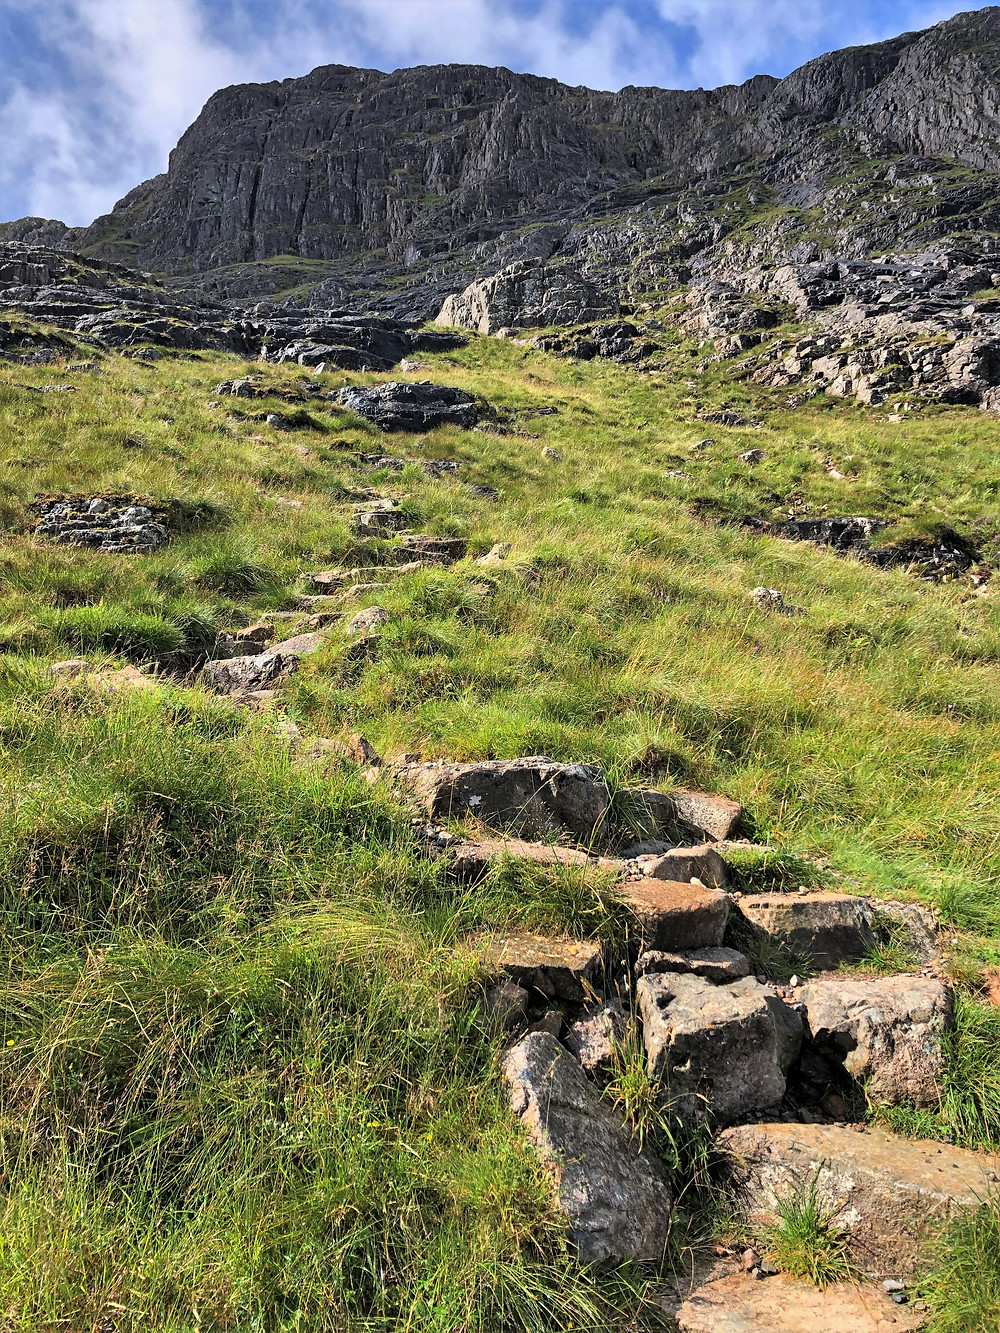 Steep headwall of Coire na Tuliach on the hike of Buachaille Etive Mòr in the Scottish Highlands